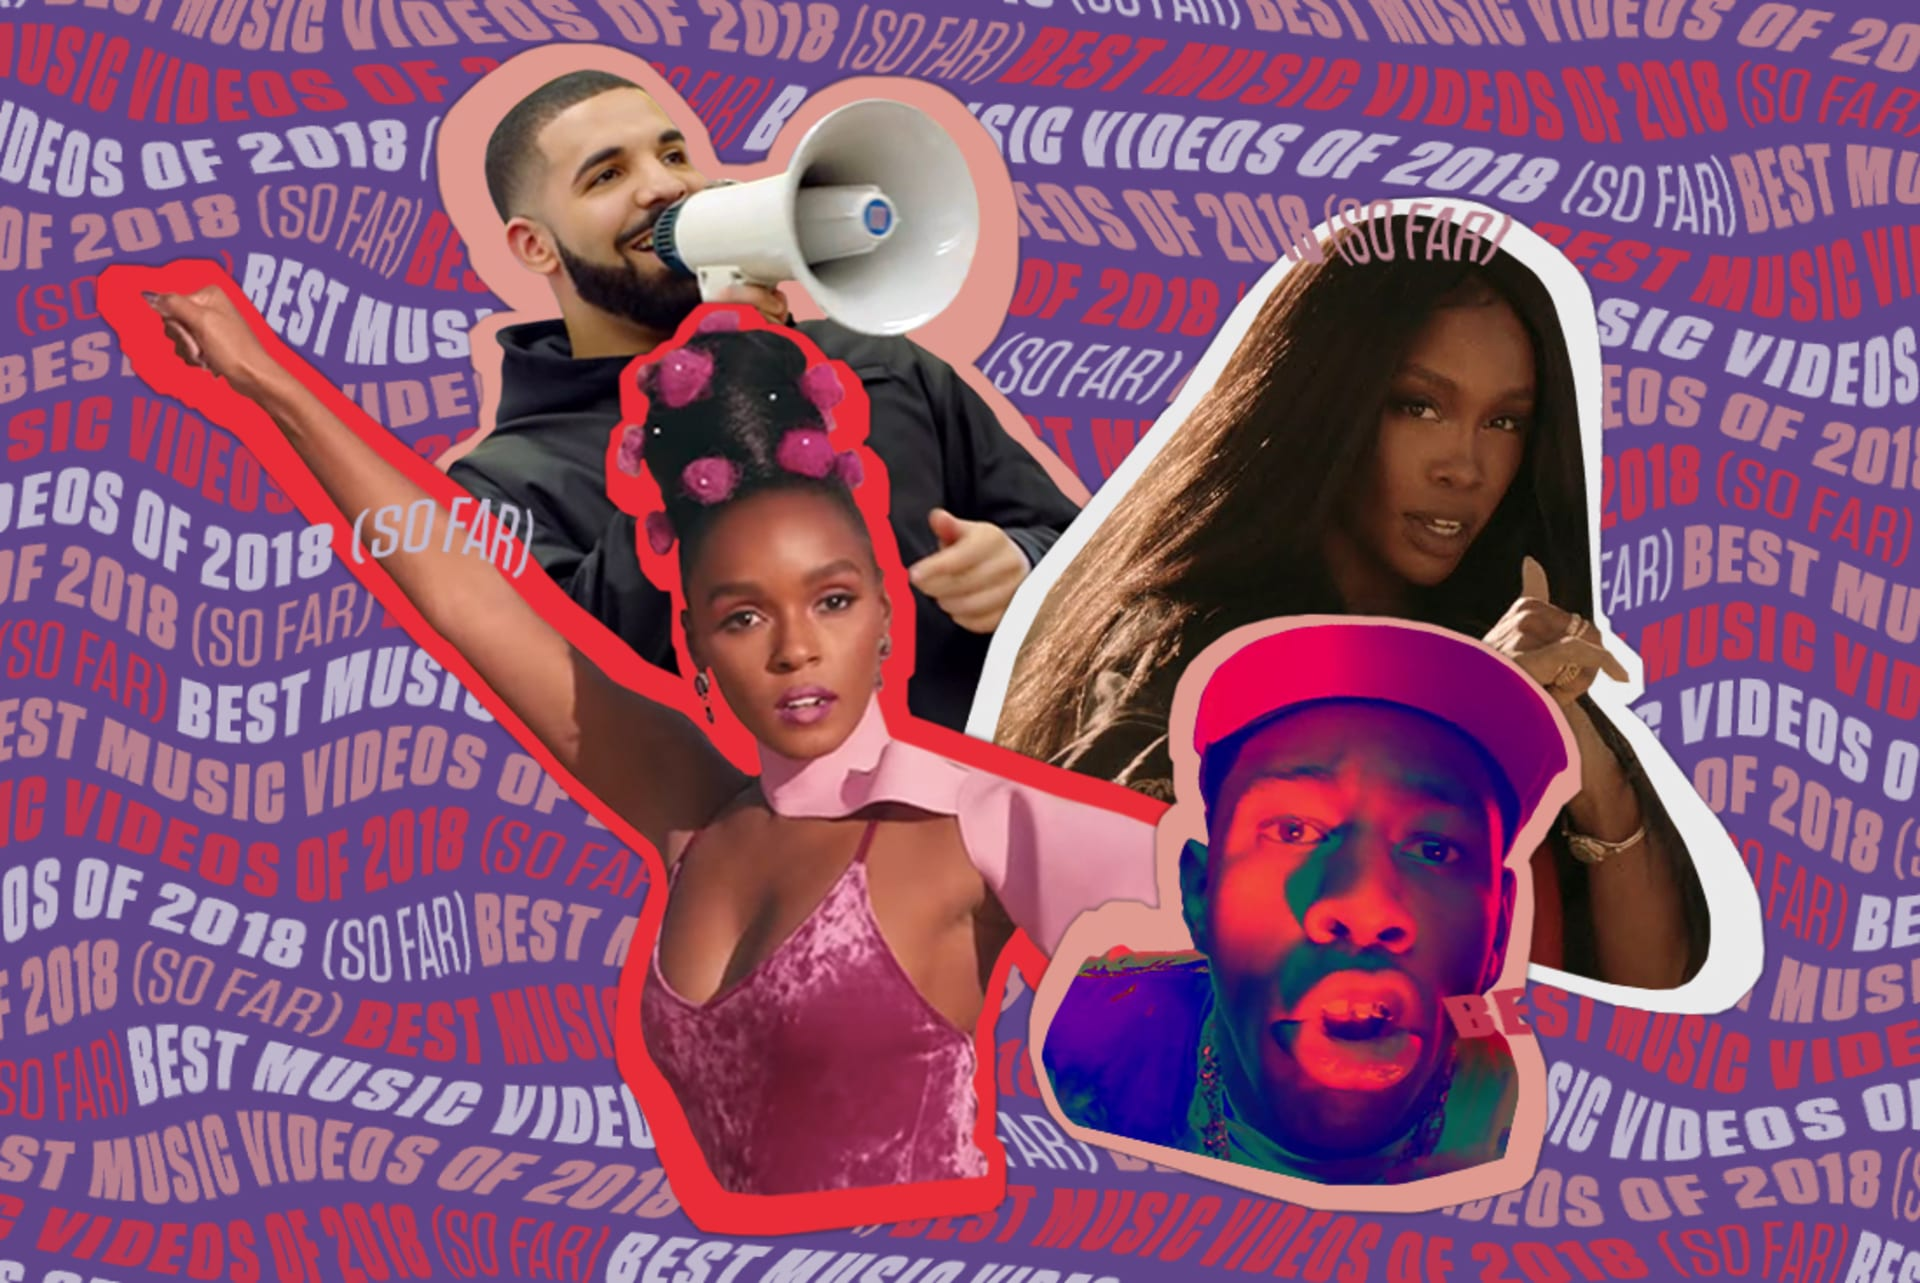 The Best Music Videos of 2018 (So Far) | Complex